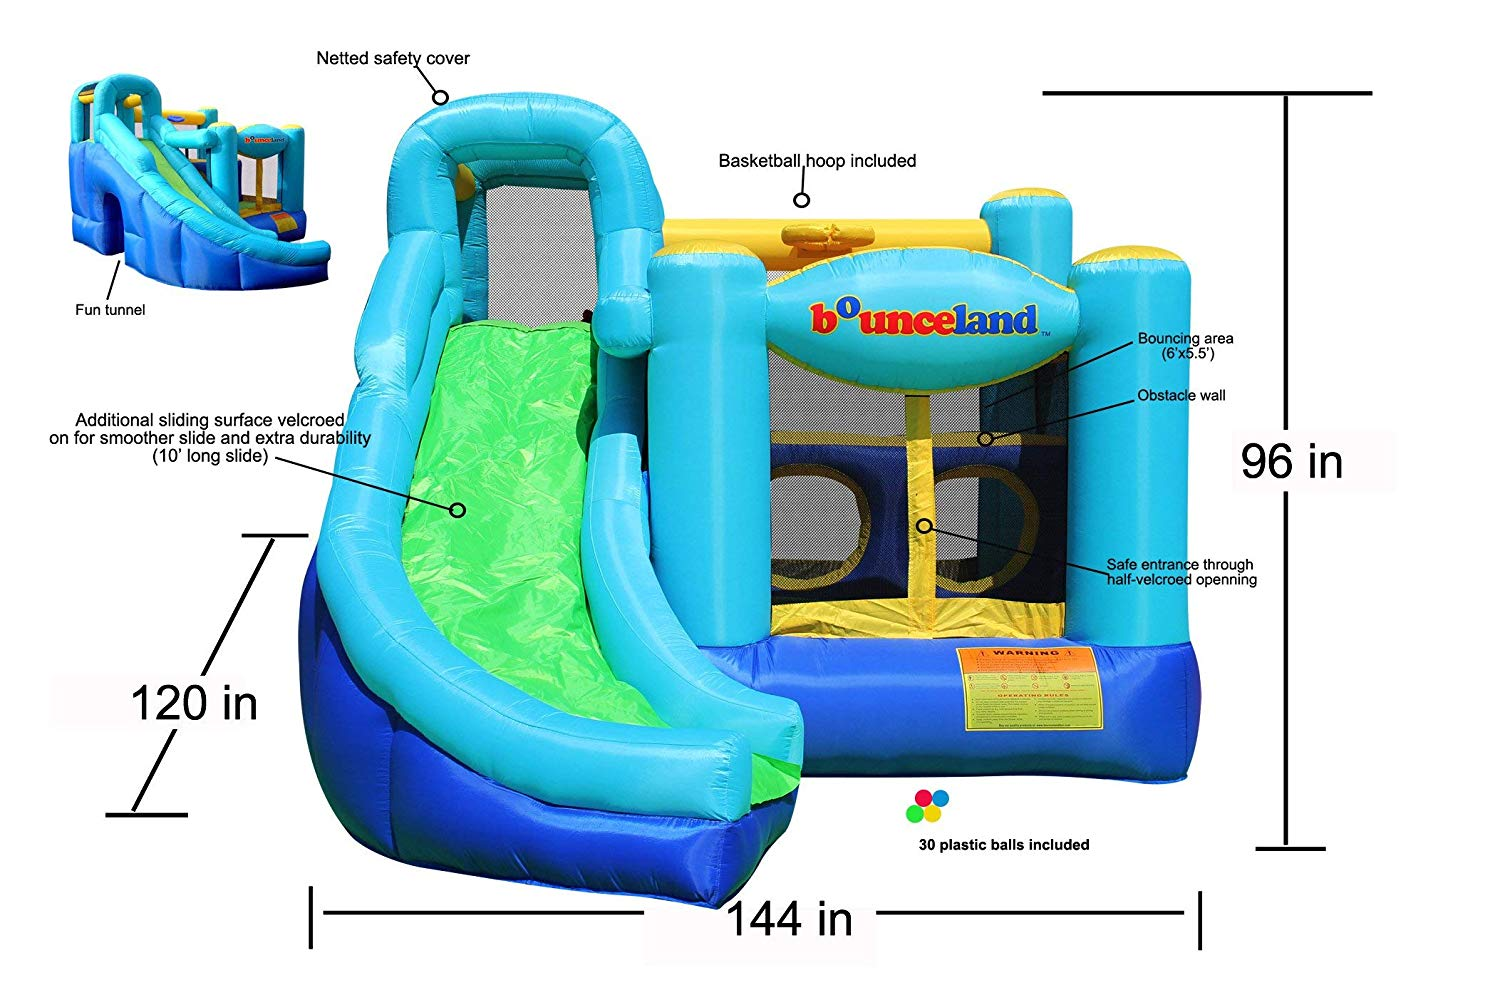 Bounceland Ultimate Combo Bouncer Specs